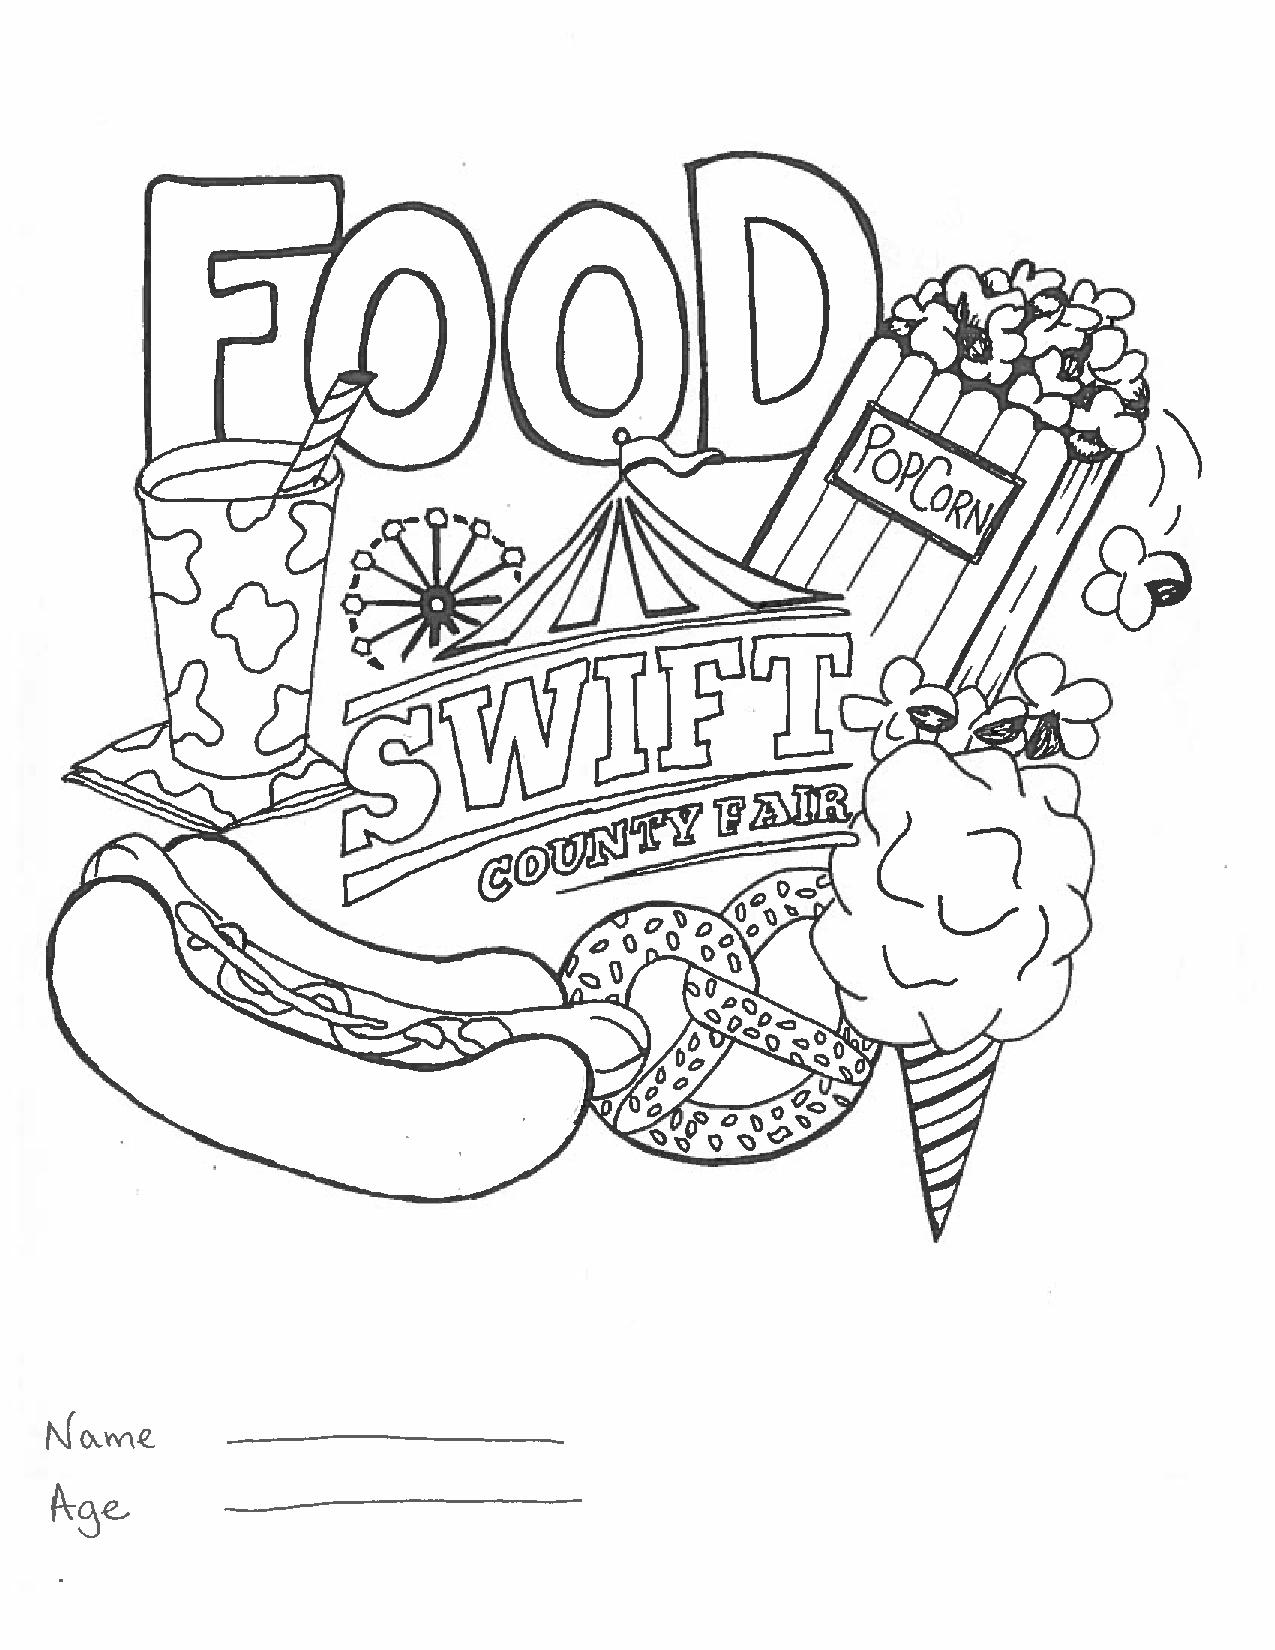 Kids Coloring Contest - 2019 Swift County Fair